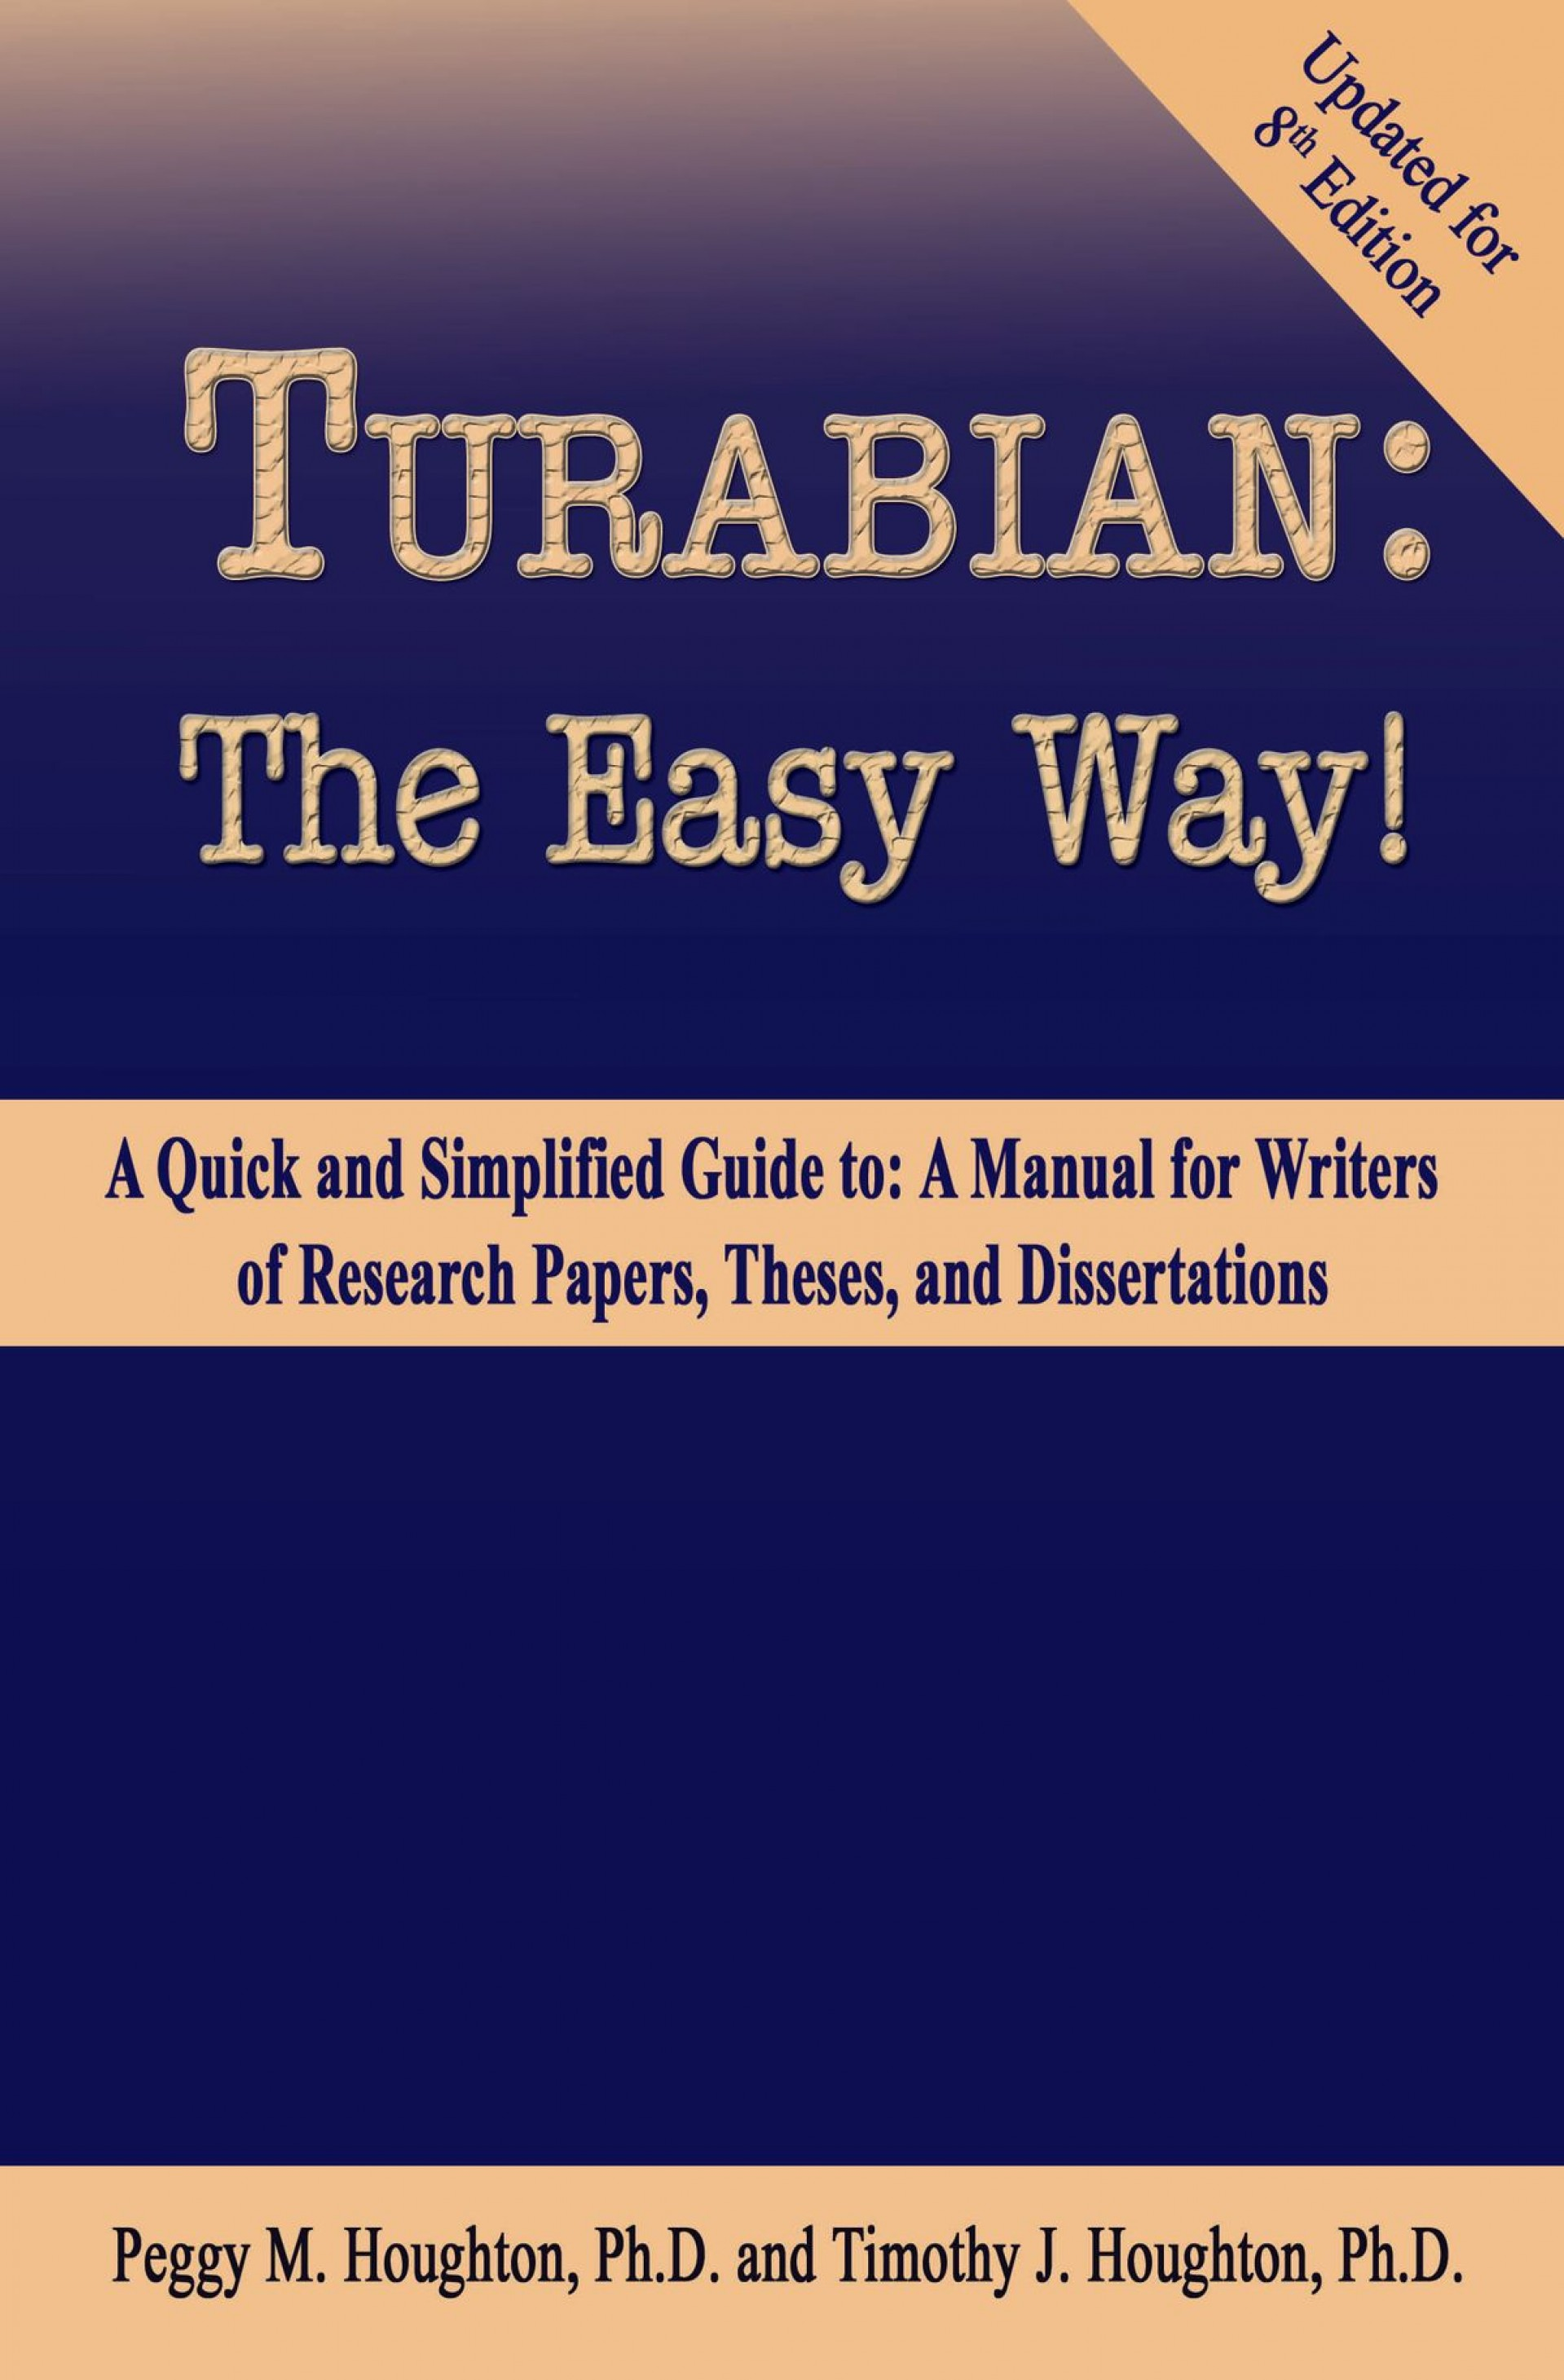 017 Turabian The Easy Way For 8th Edition Manual Writers Of Researchs Theses And Dissertations Eighth Phenomenal A Research Papers Pdf 1920